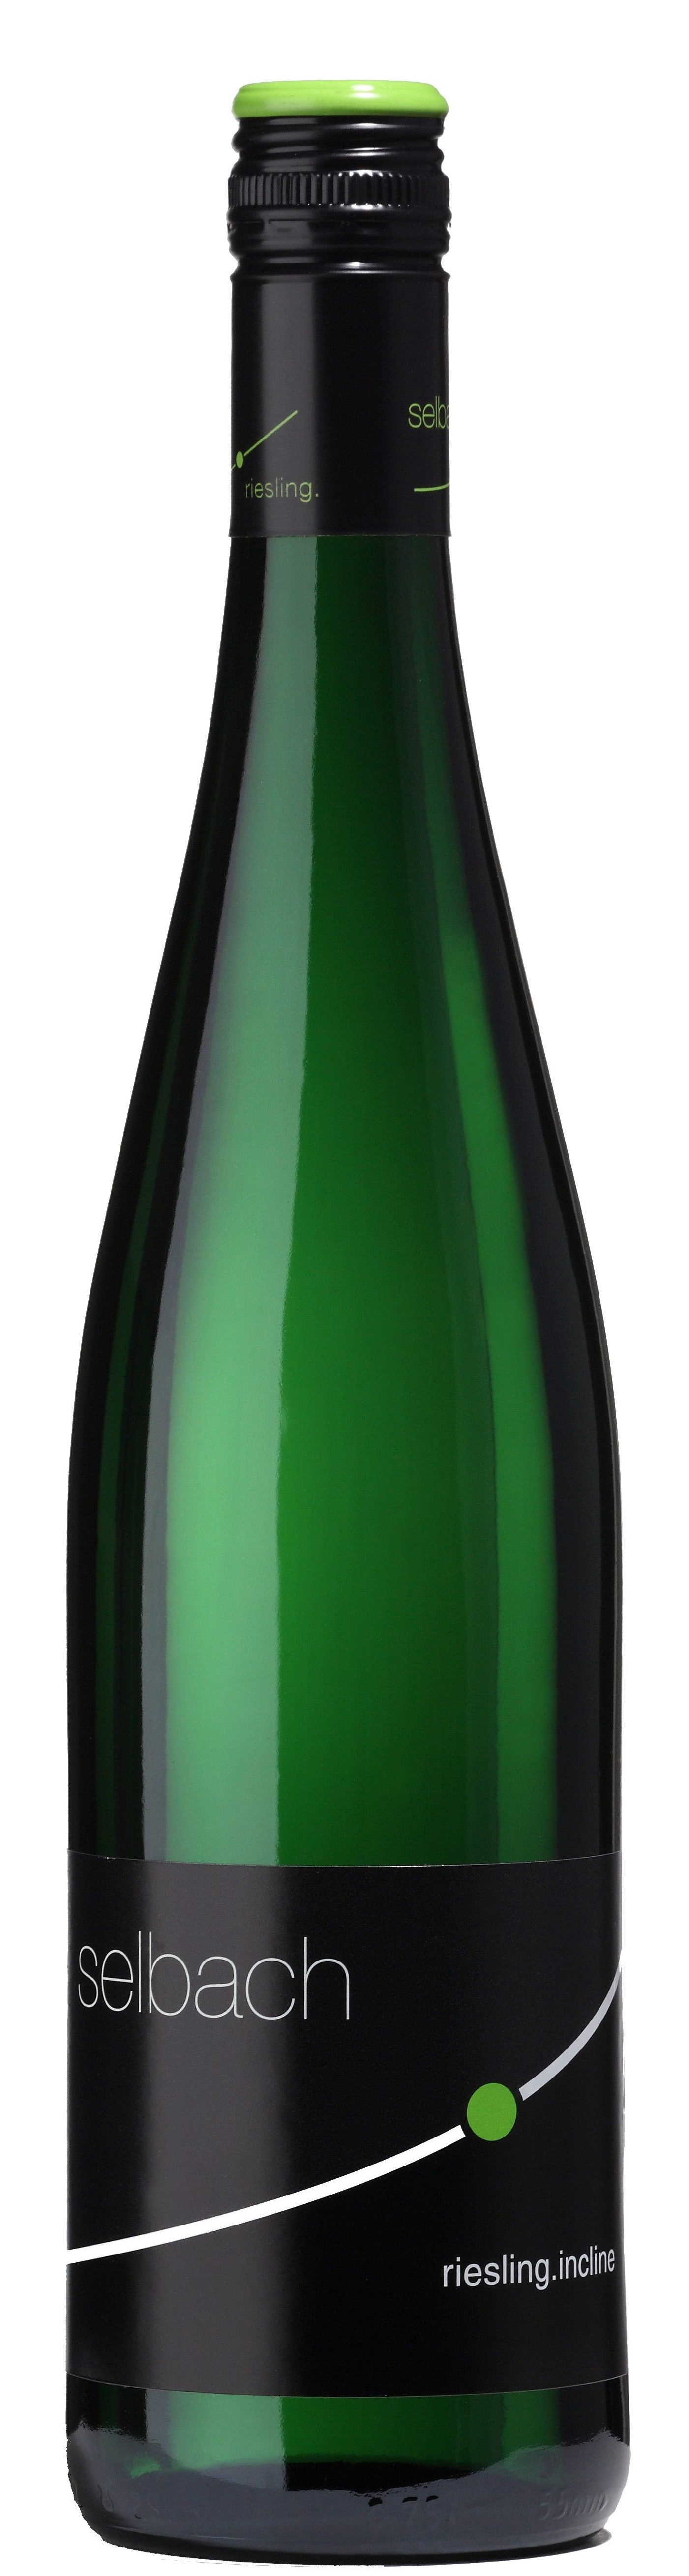 Selbach Oster Riesling Incline